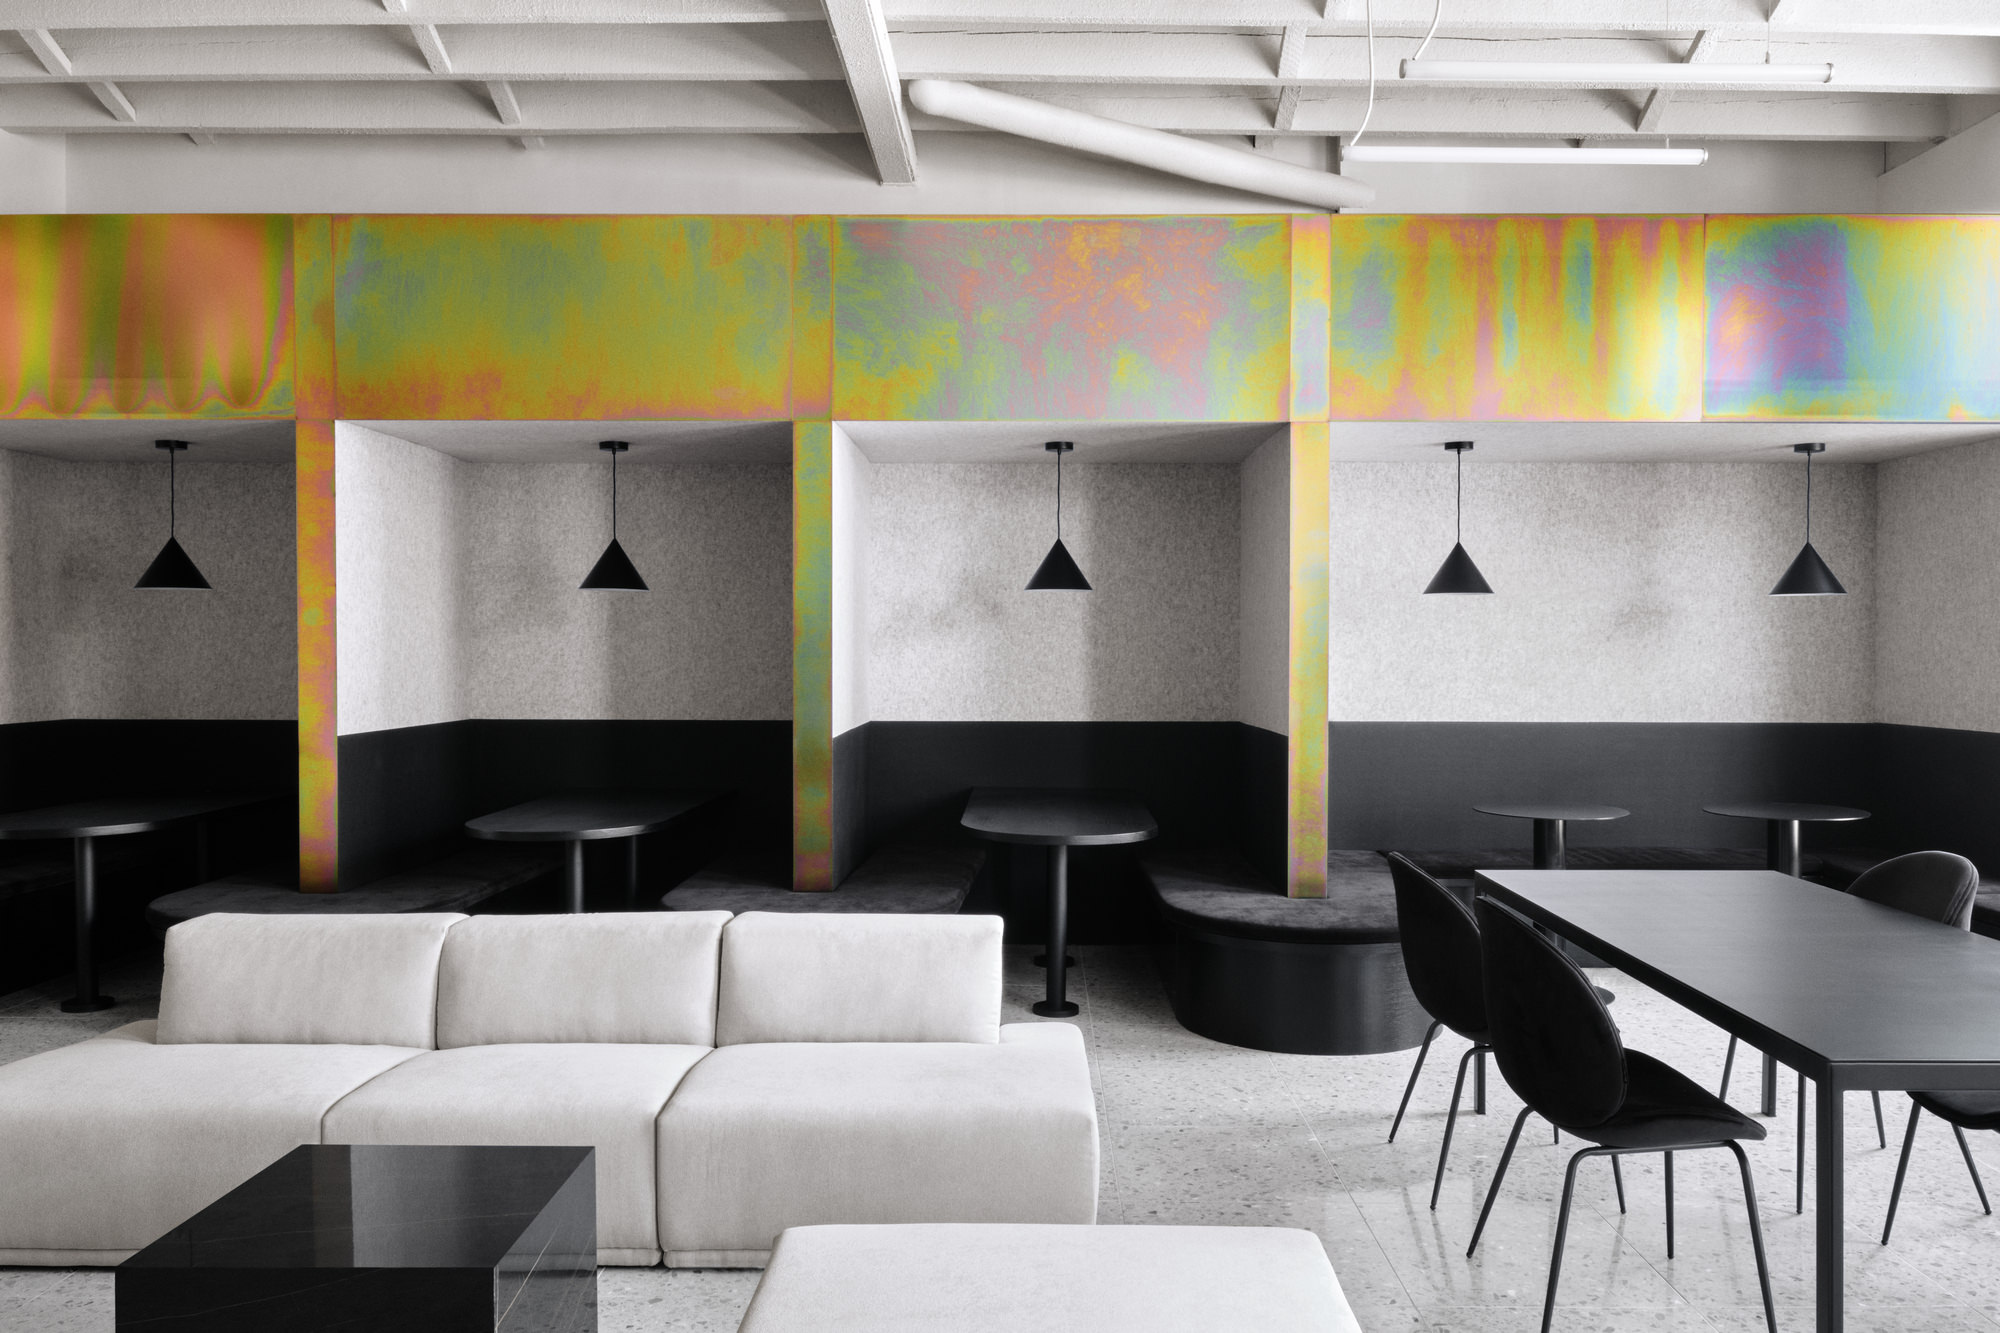 Ivy Studio Spacial Coworking Office Montreal Photo Alex Lesage Yellowtrace 09